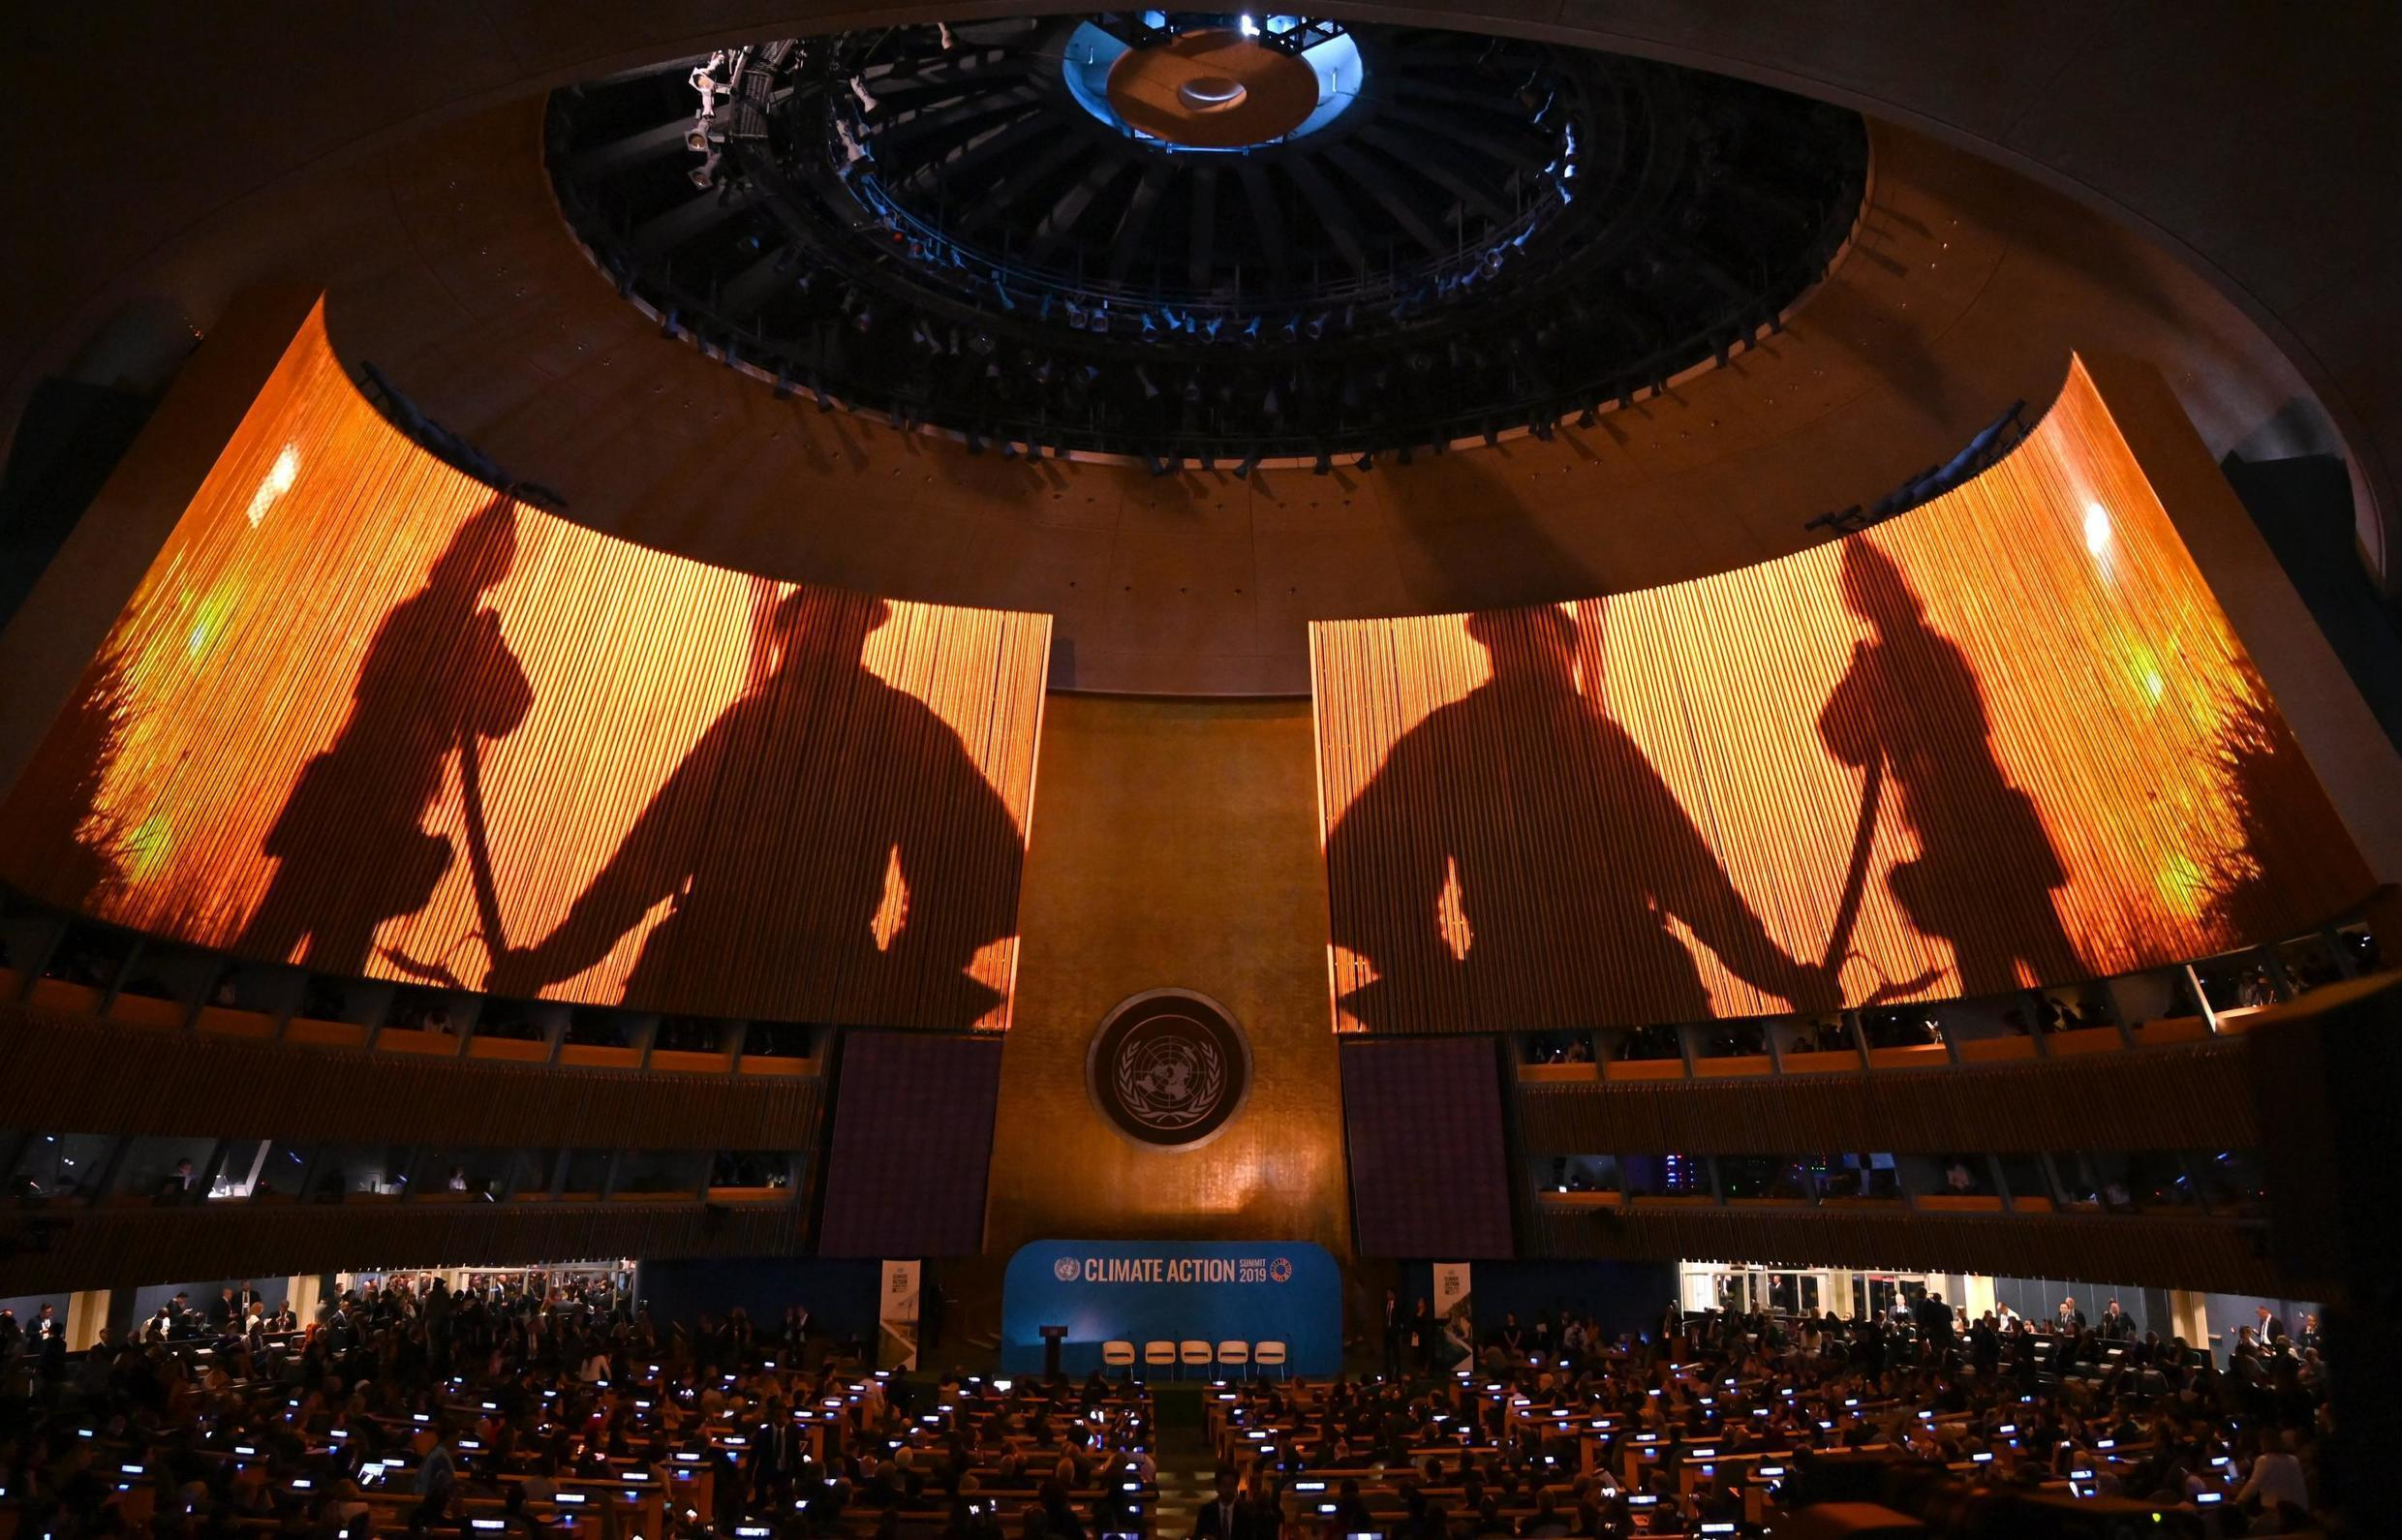 The General Assembly Hall is seen during the Climate Action Summit 2019 in the United Nations General Assembly Hall September 23, 2019 in New York City.